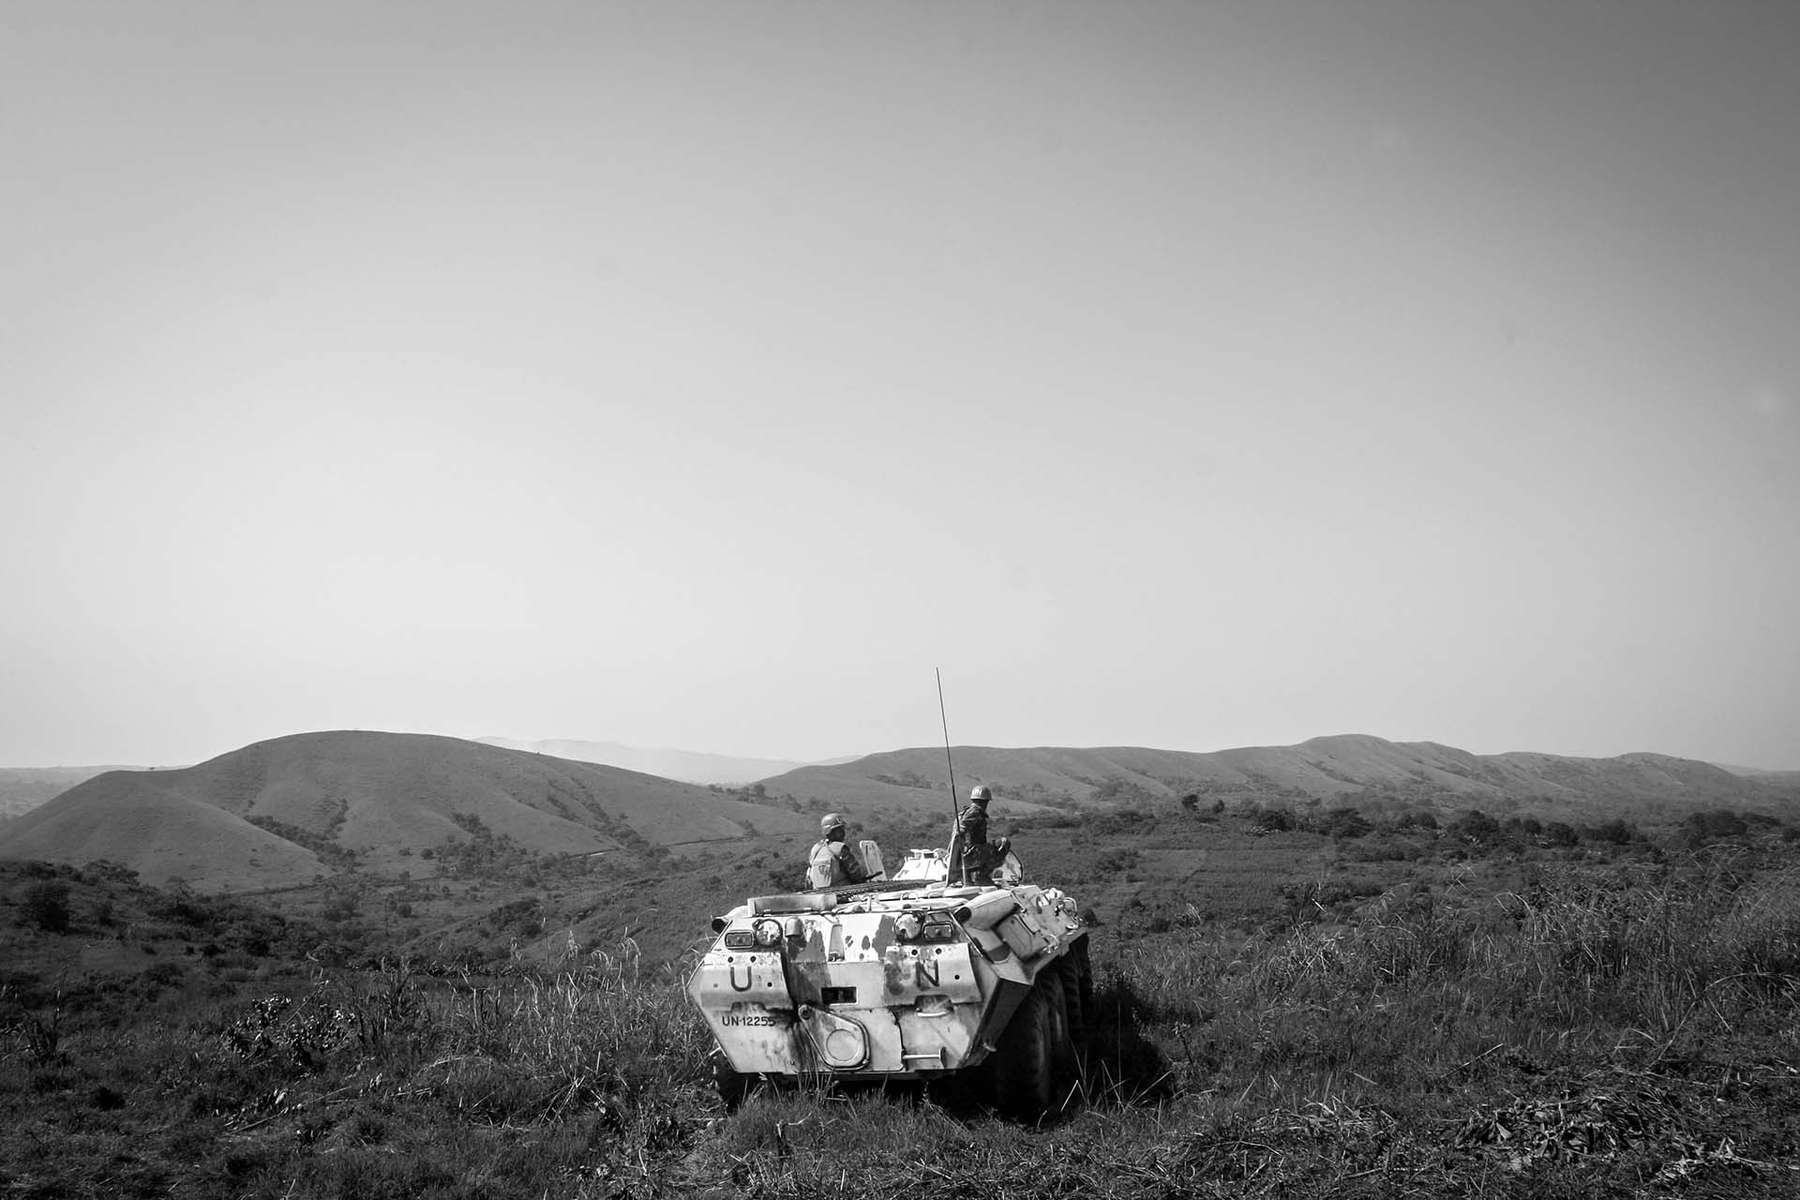 UN peacekeepers from Bangladesh ride their armored personal carrier to the hilltop, over-looking the village of Bavi where there was recent fighting between militia and government solders supported by UN.